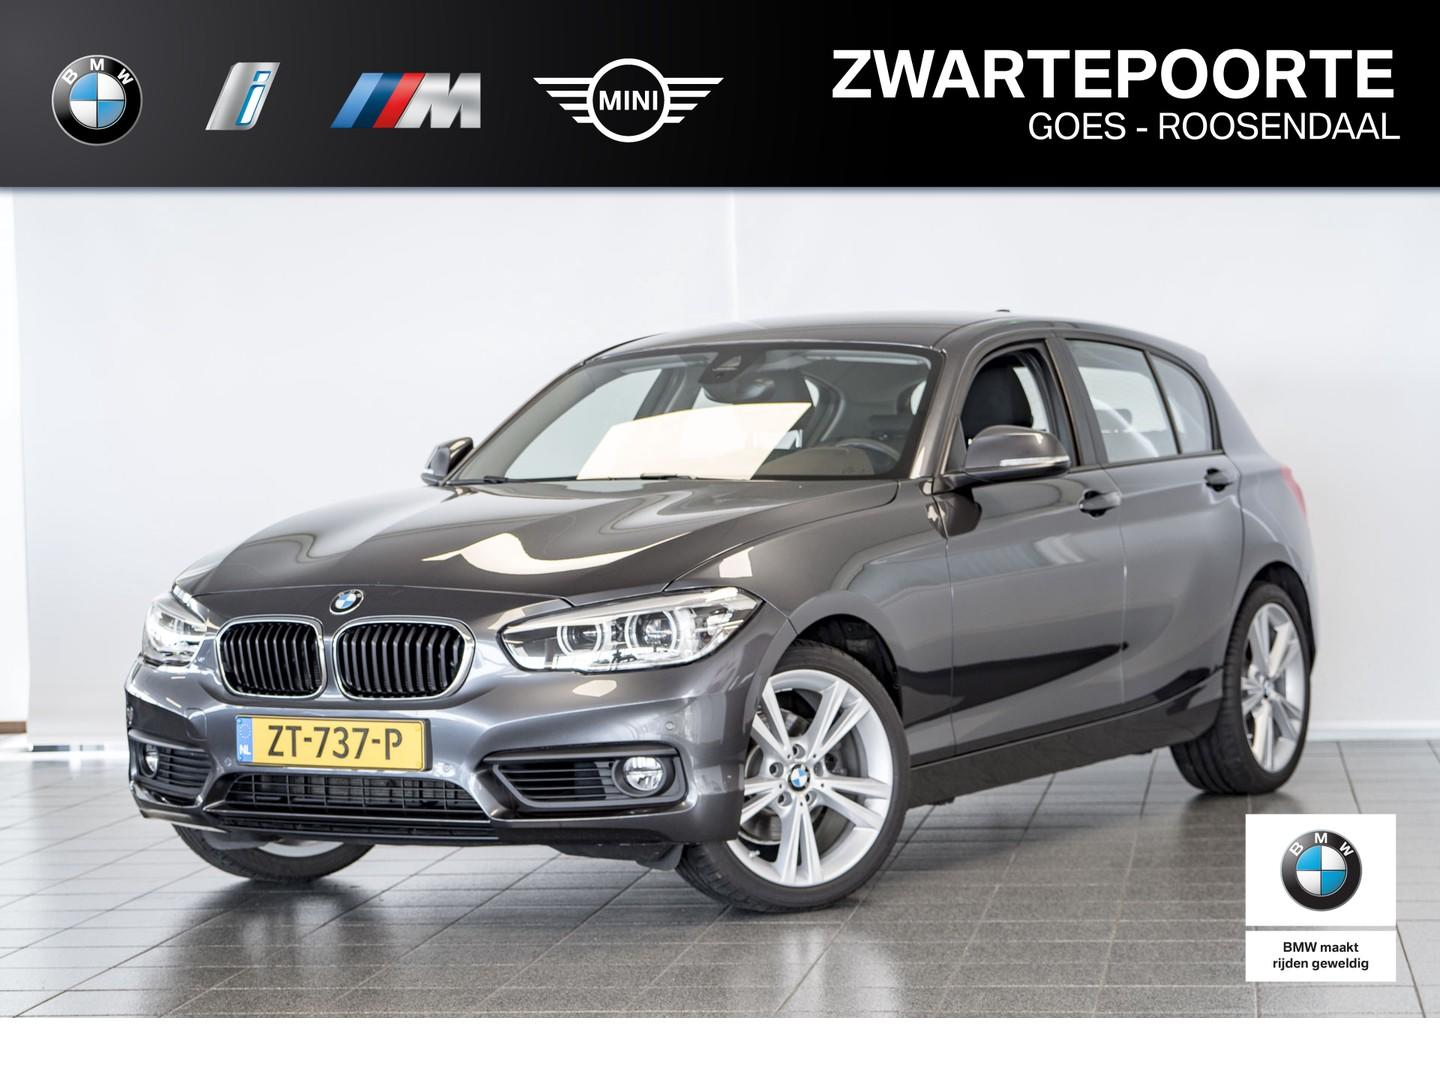 "Bmw 1 serie 120i executive 18""lm - stoelverwarming -  pdc v-a"